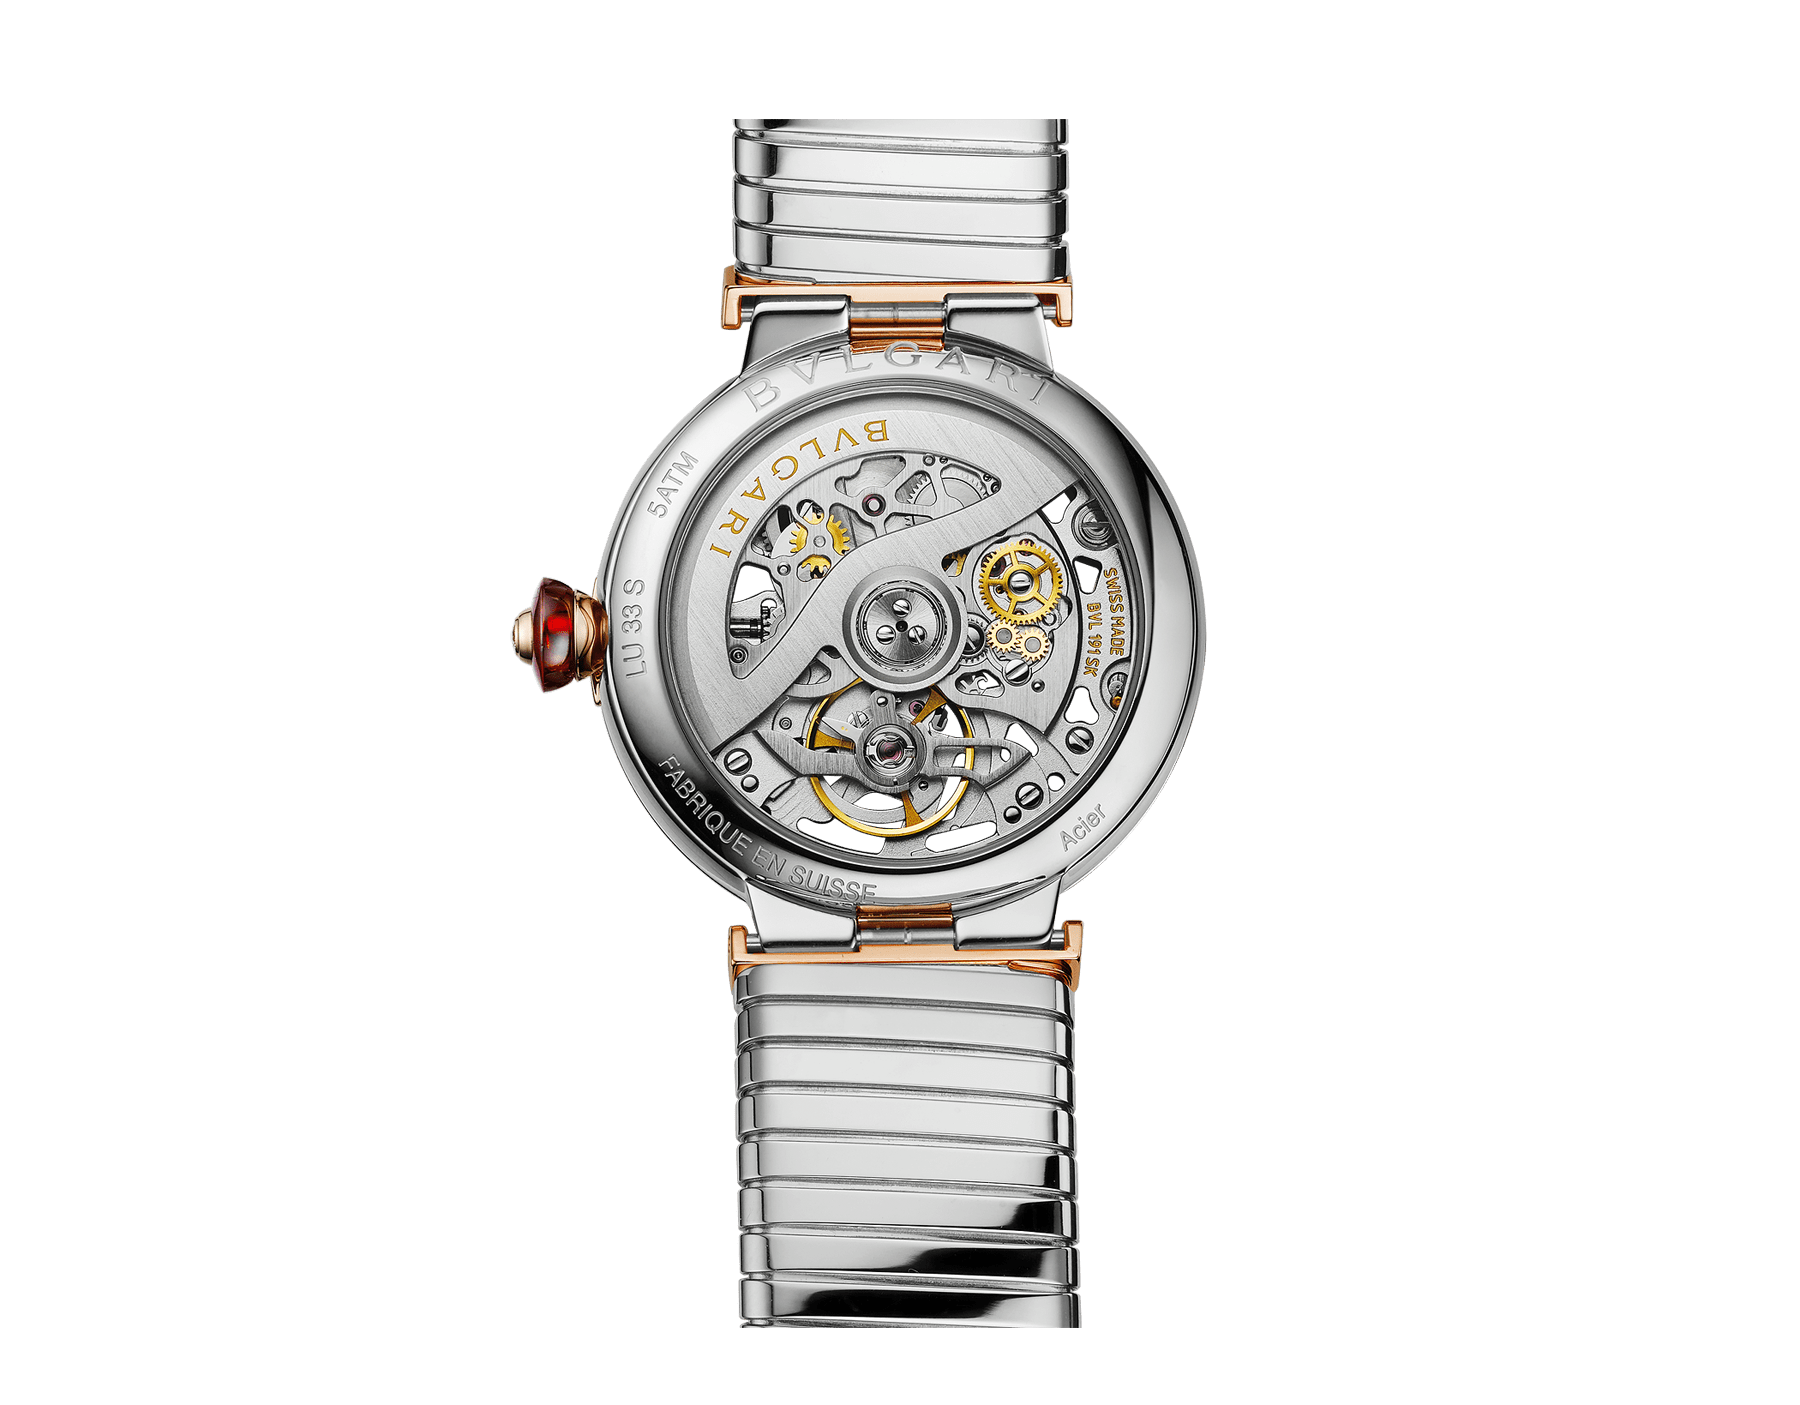 LVCEA Skeleton watch with mechanical movement, automatic winding, stainless steel case, 18 kt rose gold bezel with diamond detail, 18 kt rose gold openwork BVLGARI logo dial and links both set with round brilliant-cut diamonds, and stainless steel tubogas bracelet 103093 image 4